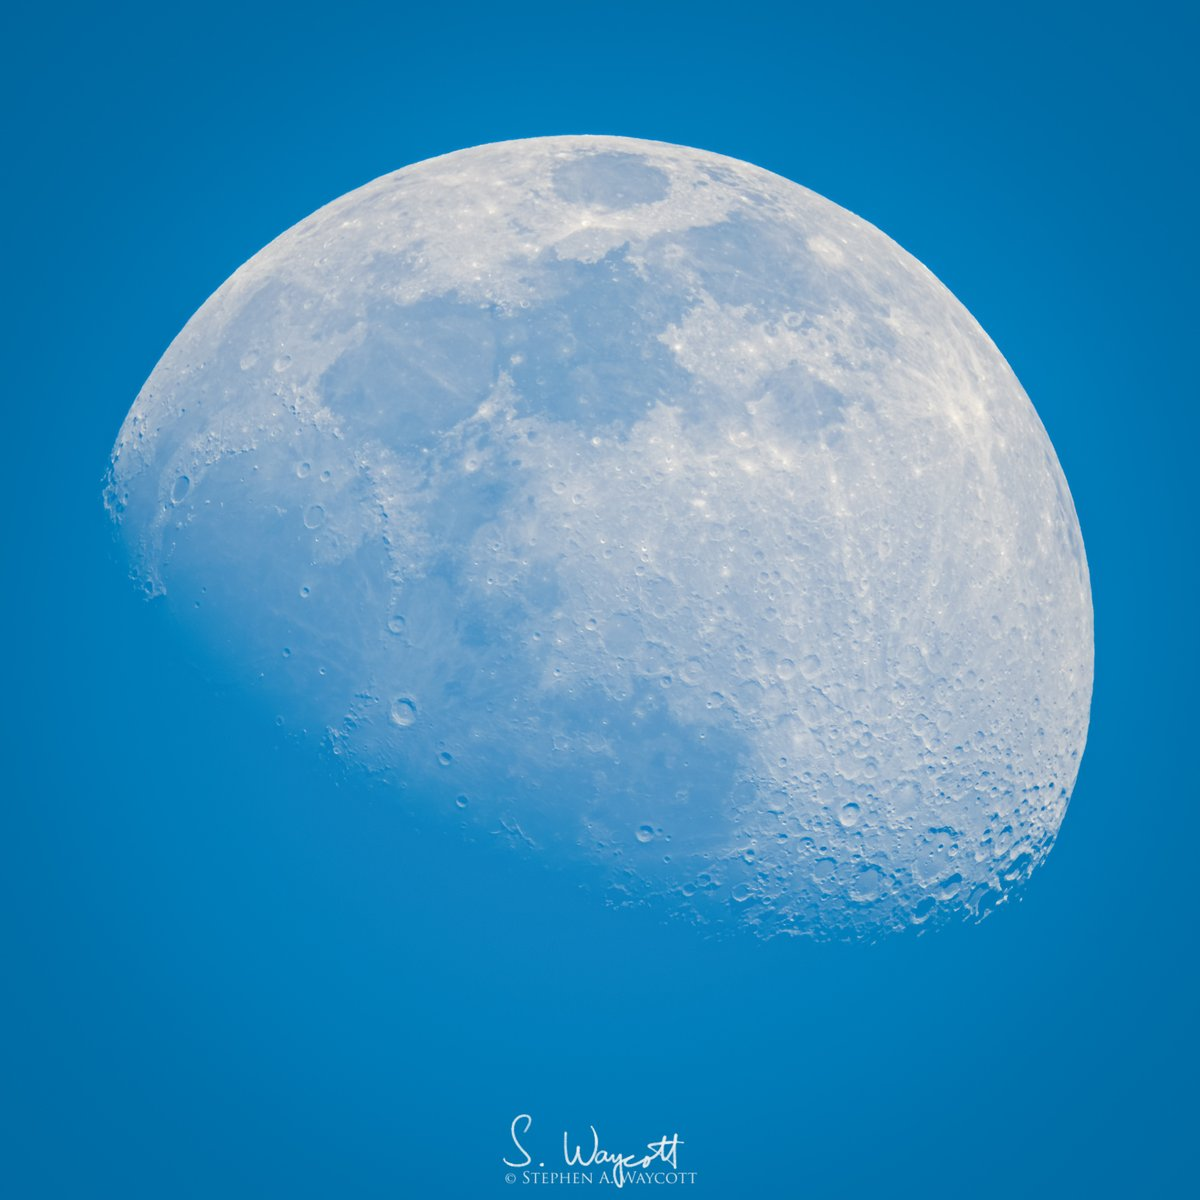 Playing around with the bright daytime moon this afternoon.  Nikon D850 + Sigma 500mm f/4 Sport + TC-2001, supported by Jobu Design Algonquin tripod + Heavy Duty MK IV gimbal head  #moon #daymoon #Nikon #D850 #Sigma500sport <br>http://pic.twitter.com/rkVONs0cGE